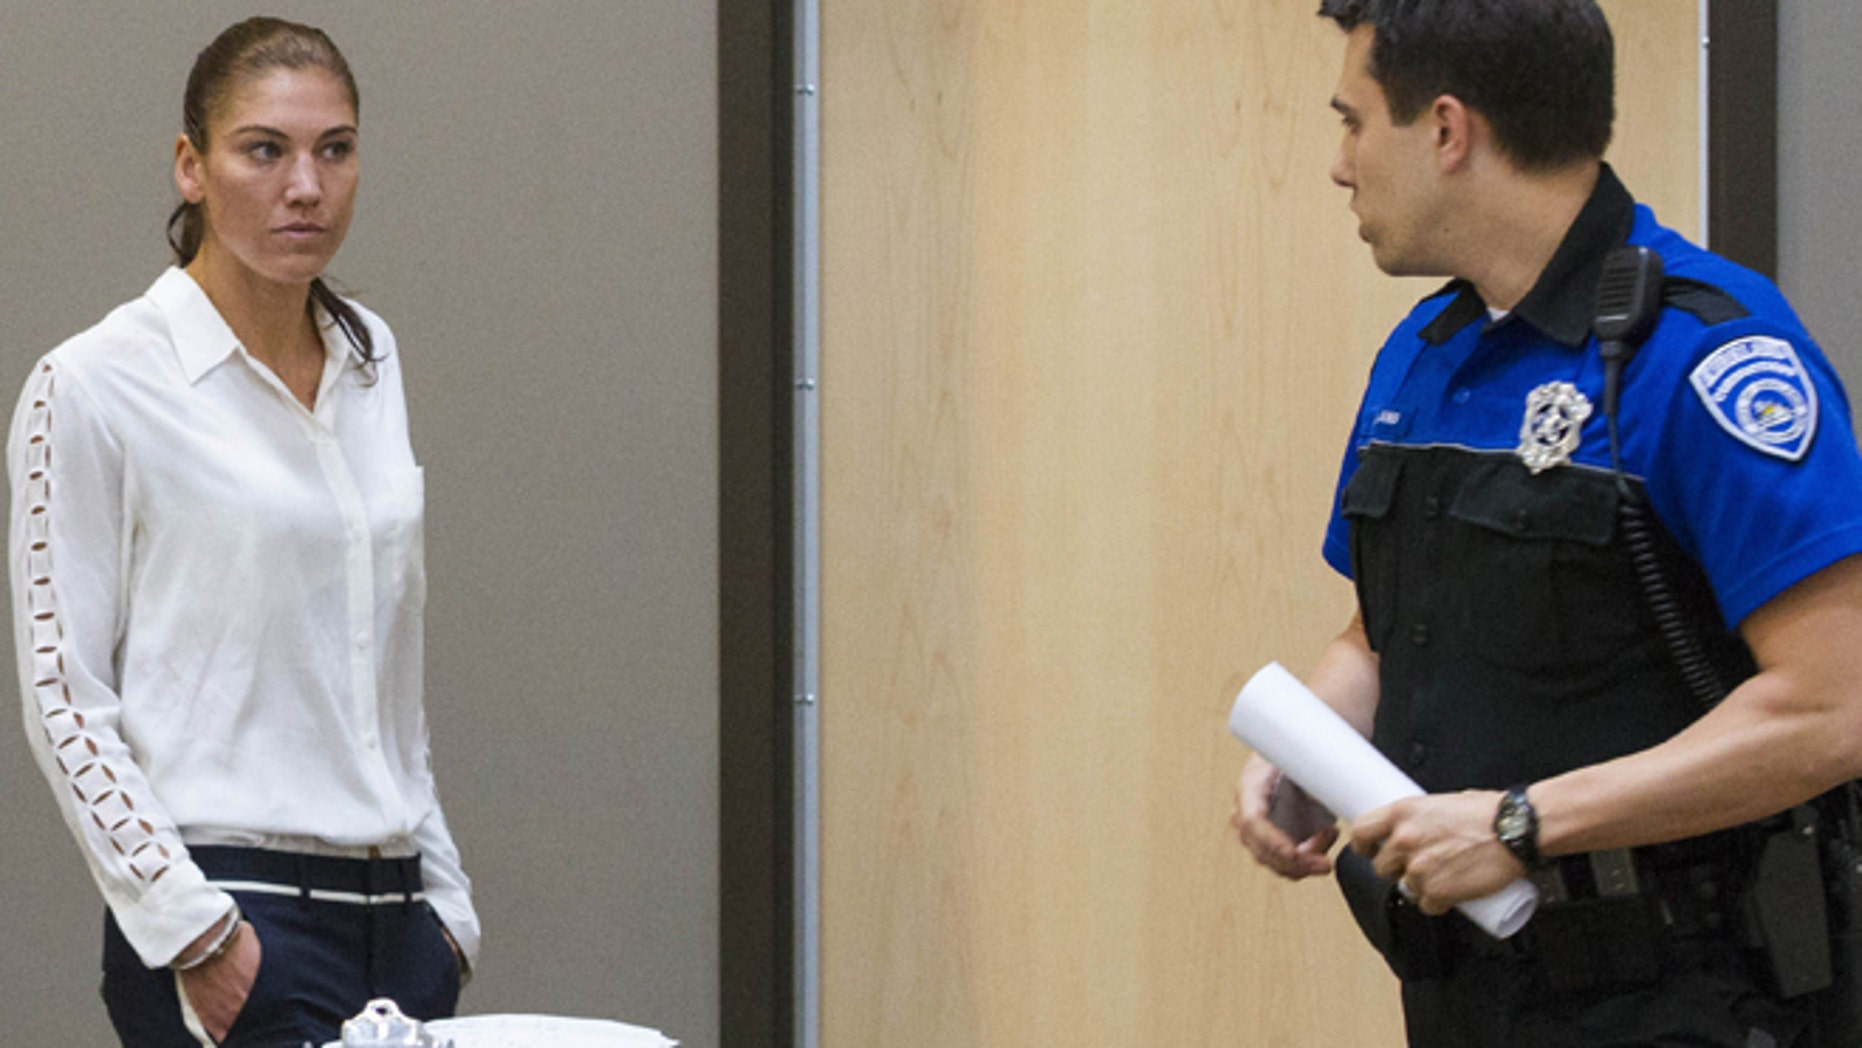 June 23, 2014: U.S. women's soccer team goalkeeper Hope Solo appears in Kirkland Municipal Court in connection with her domestic violence arrest at her sister's home in Kirkland, Wash.